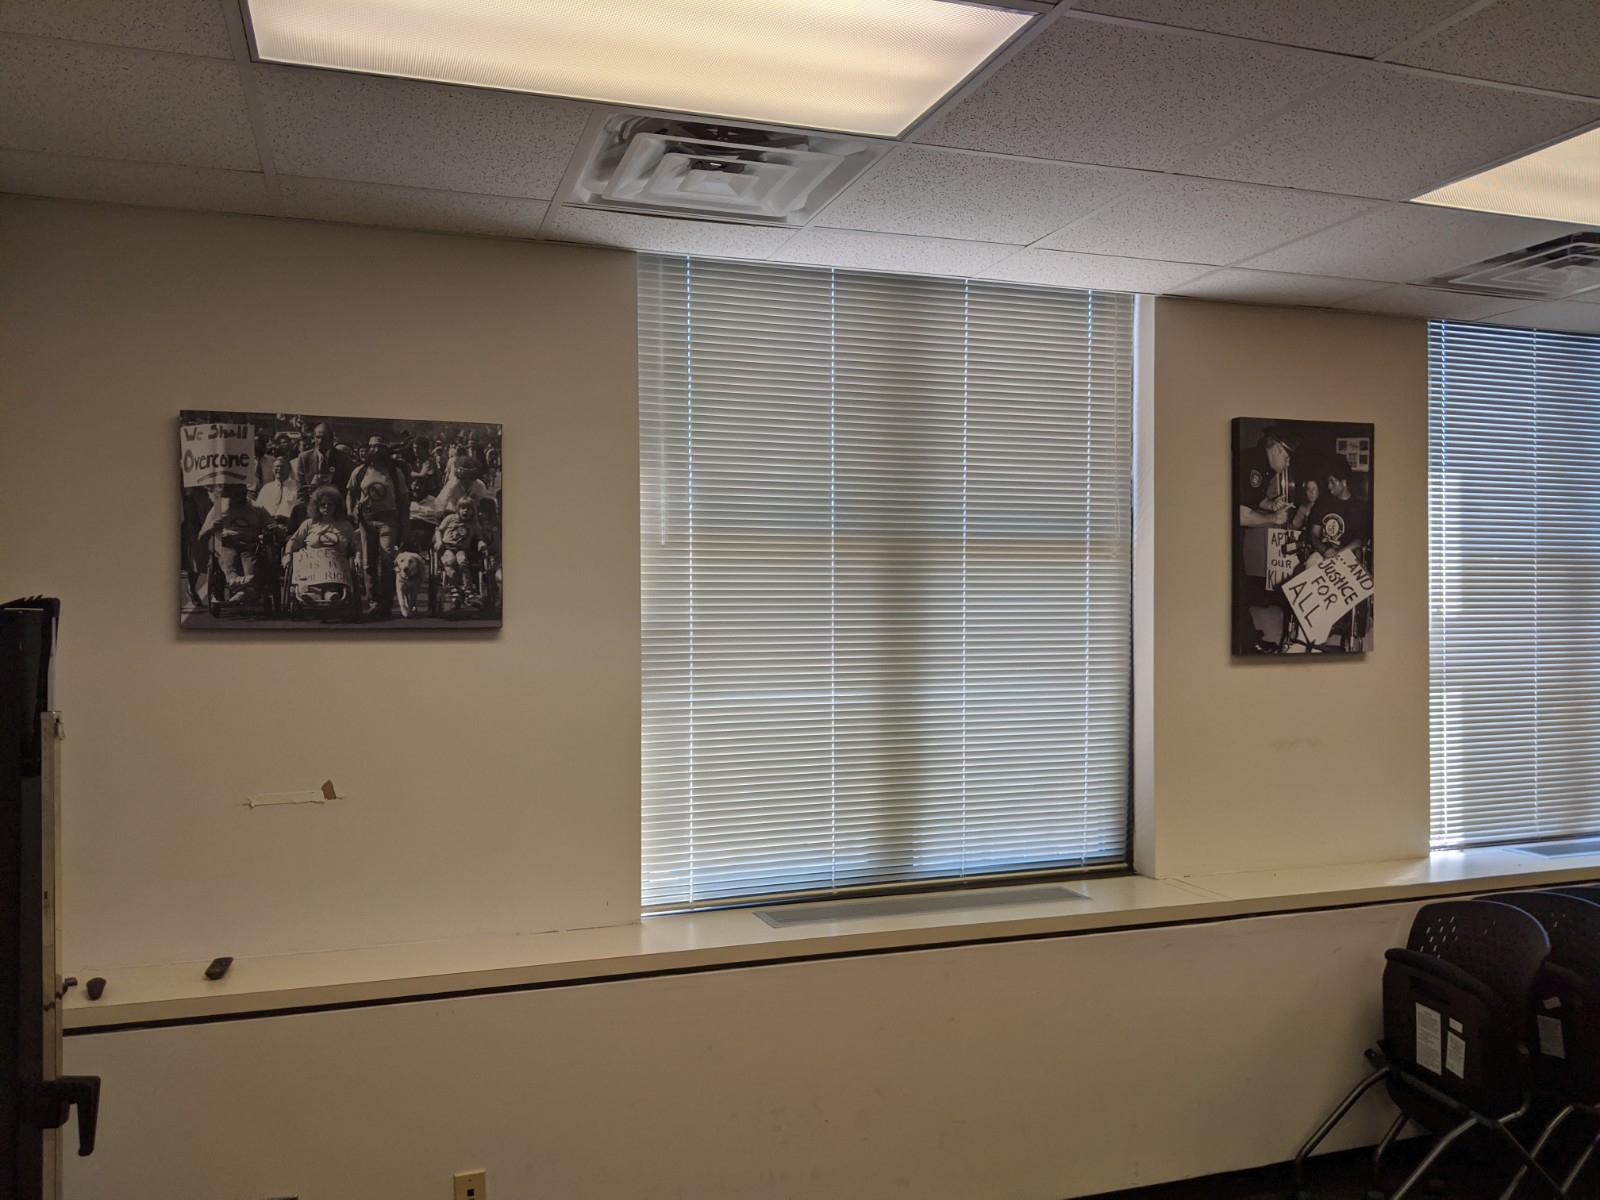 A meeting room with Tom Olin's black and white photos hung on the wall